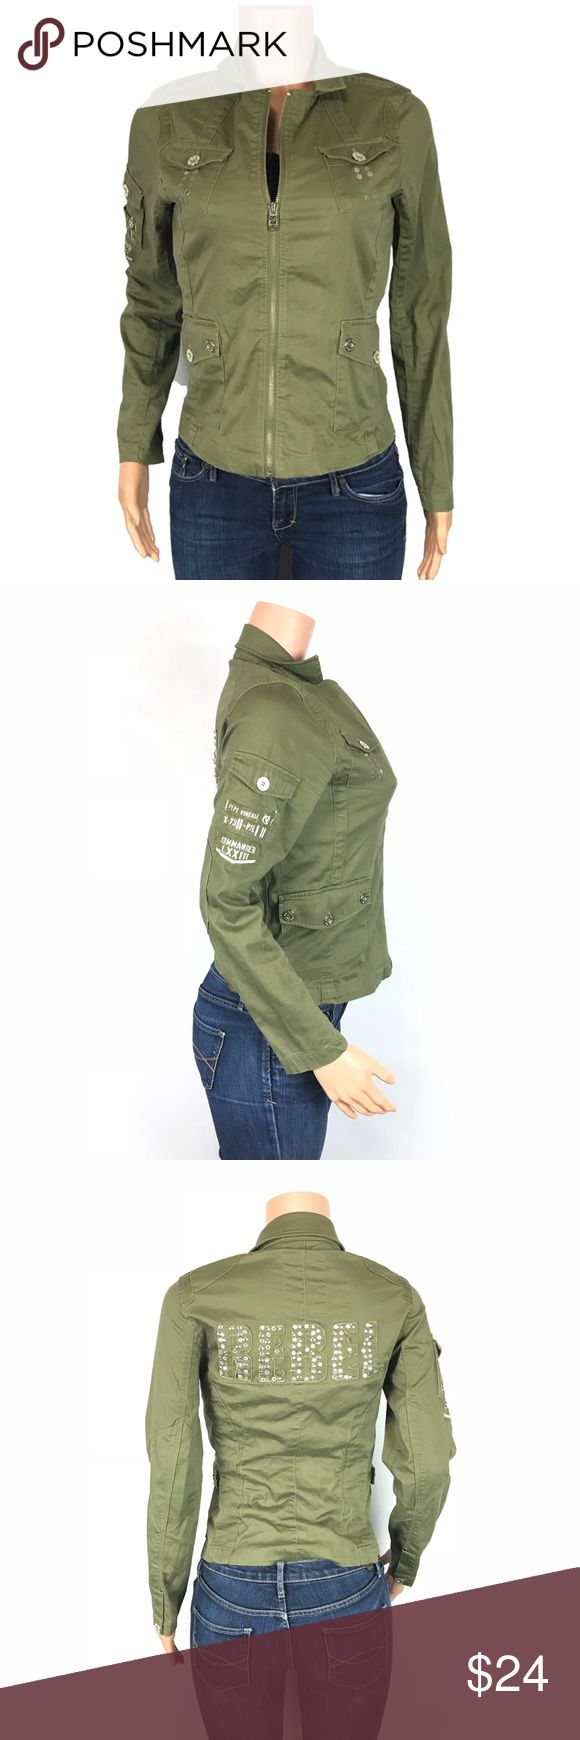 Pepe Jeans rebel zip jacket Cute Pepe  full zip jacket has a small defect shown in photos size Medium Pepe Jeans Jackets & Coats Utility Jackets